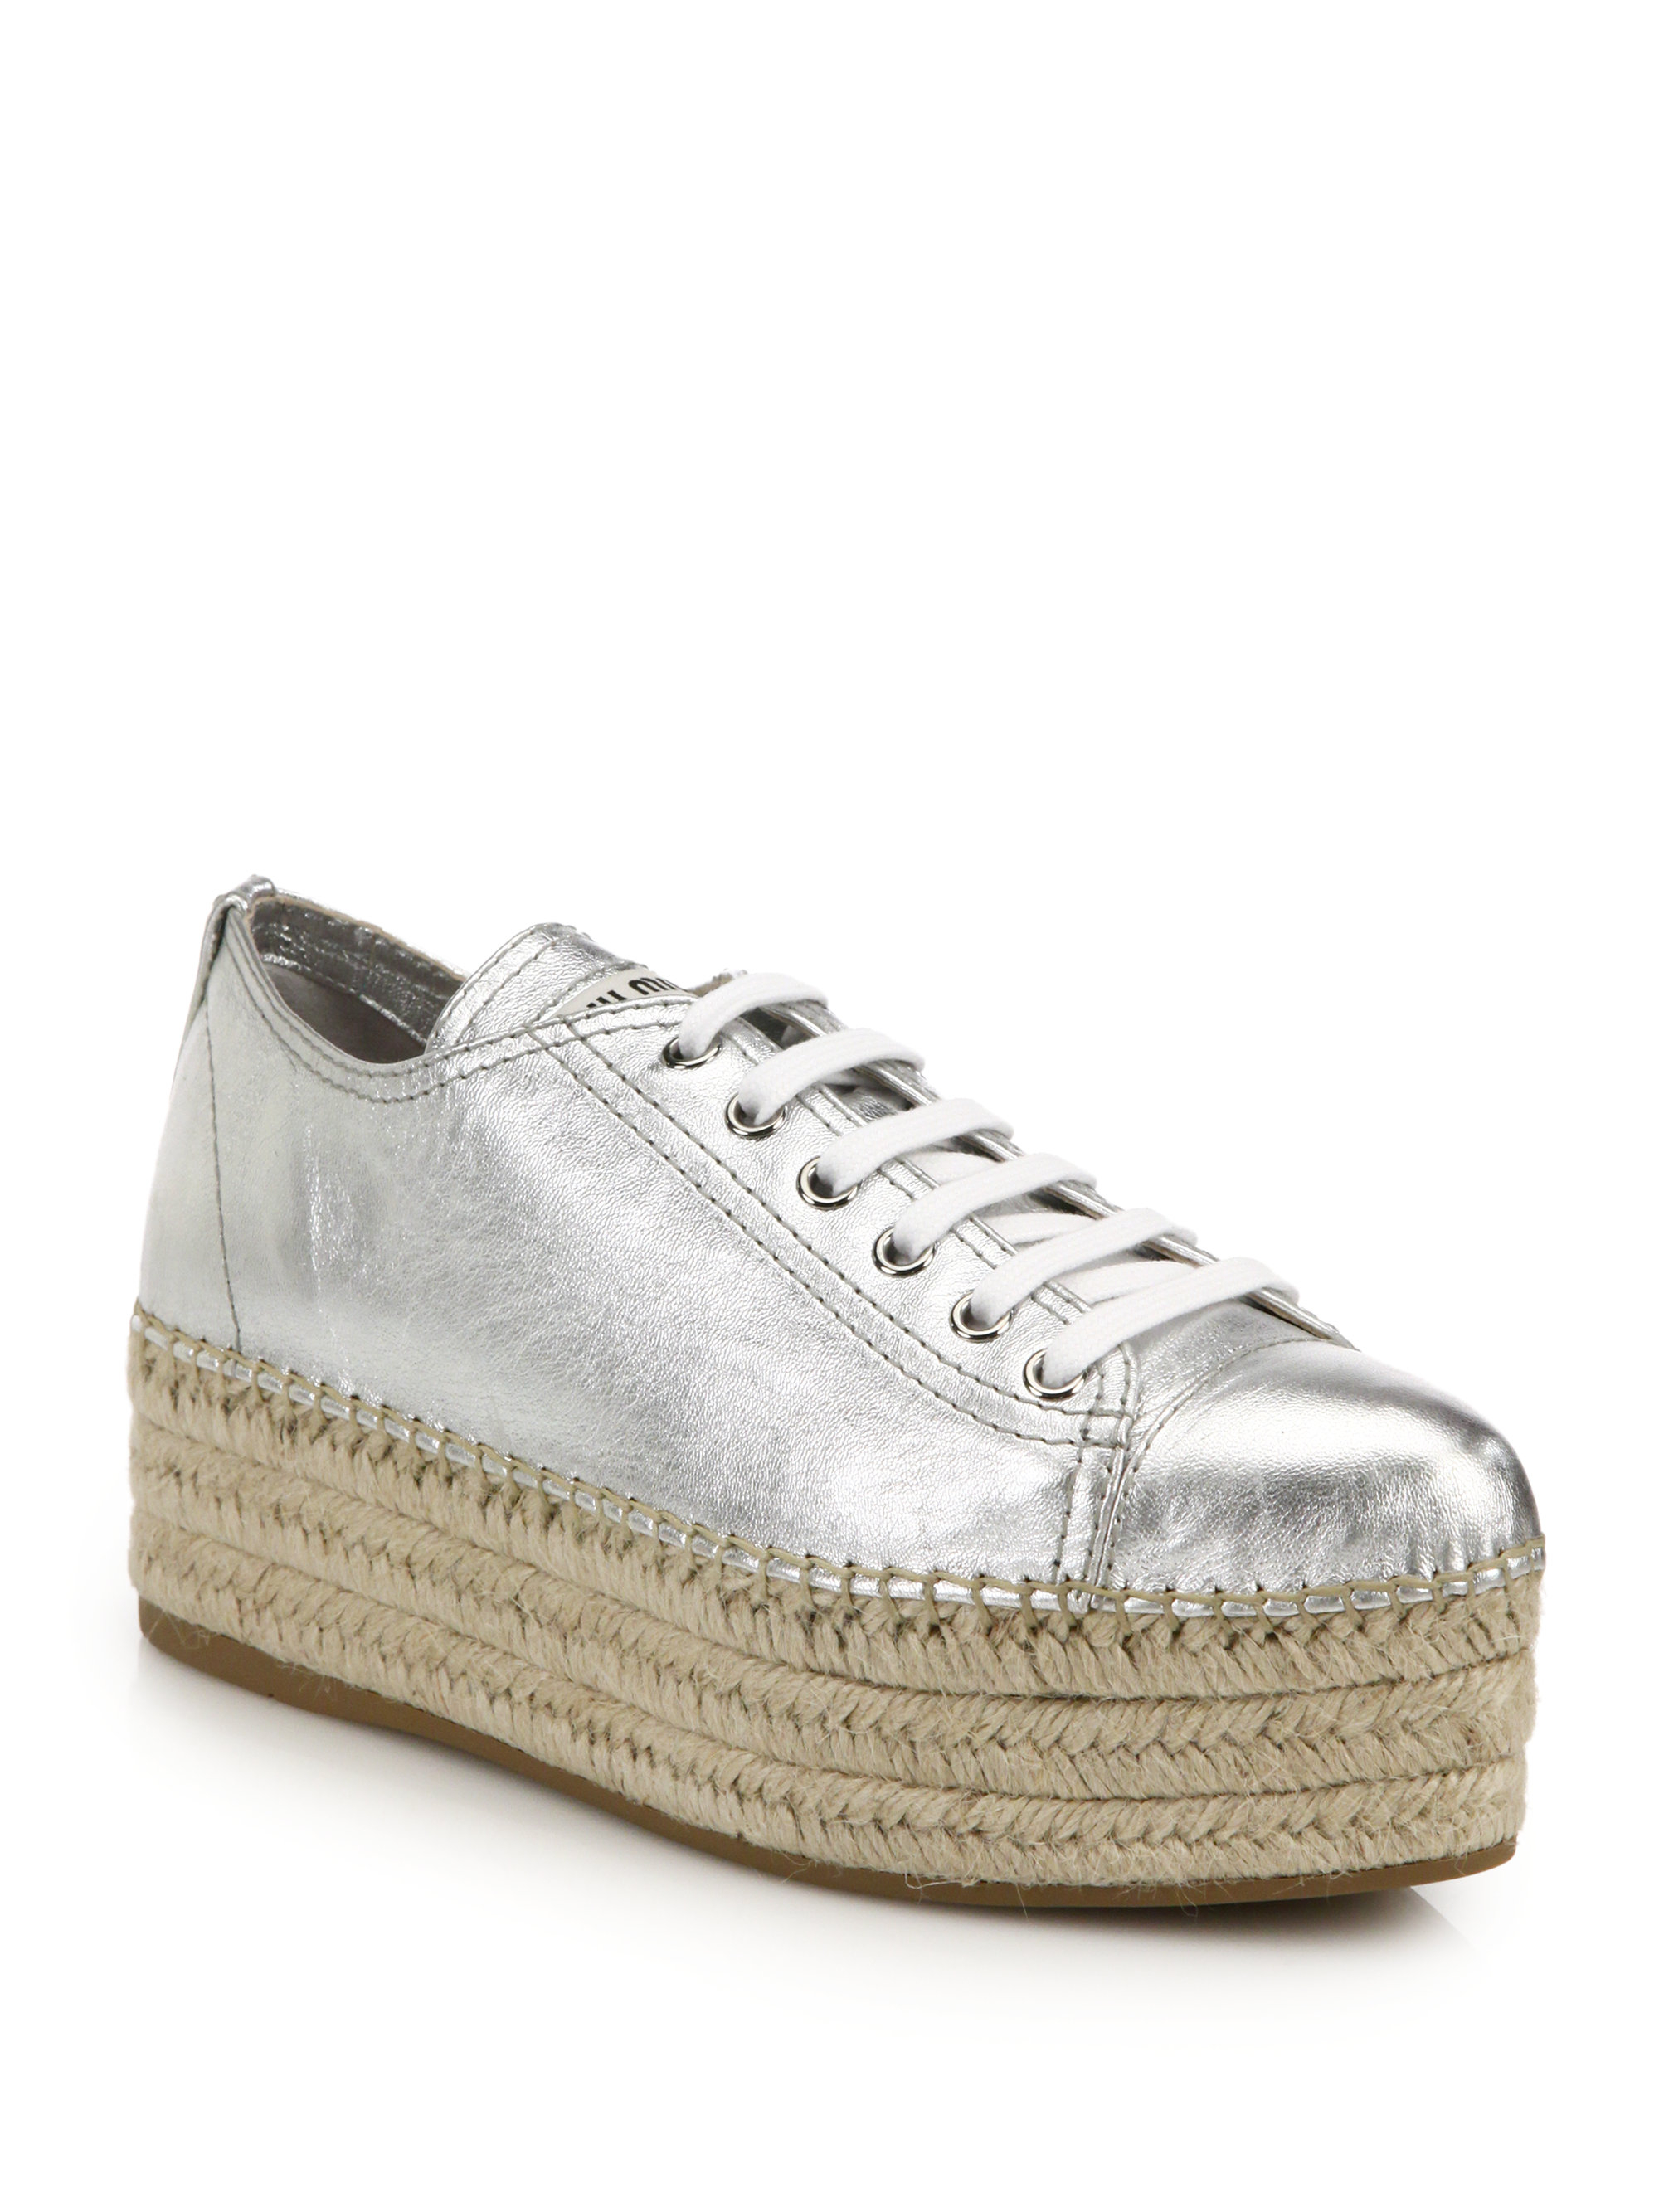 Metallic leather platform sneakers Miu Miu 6Se1YsmBpn